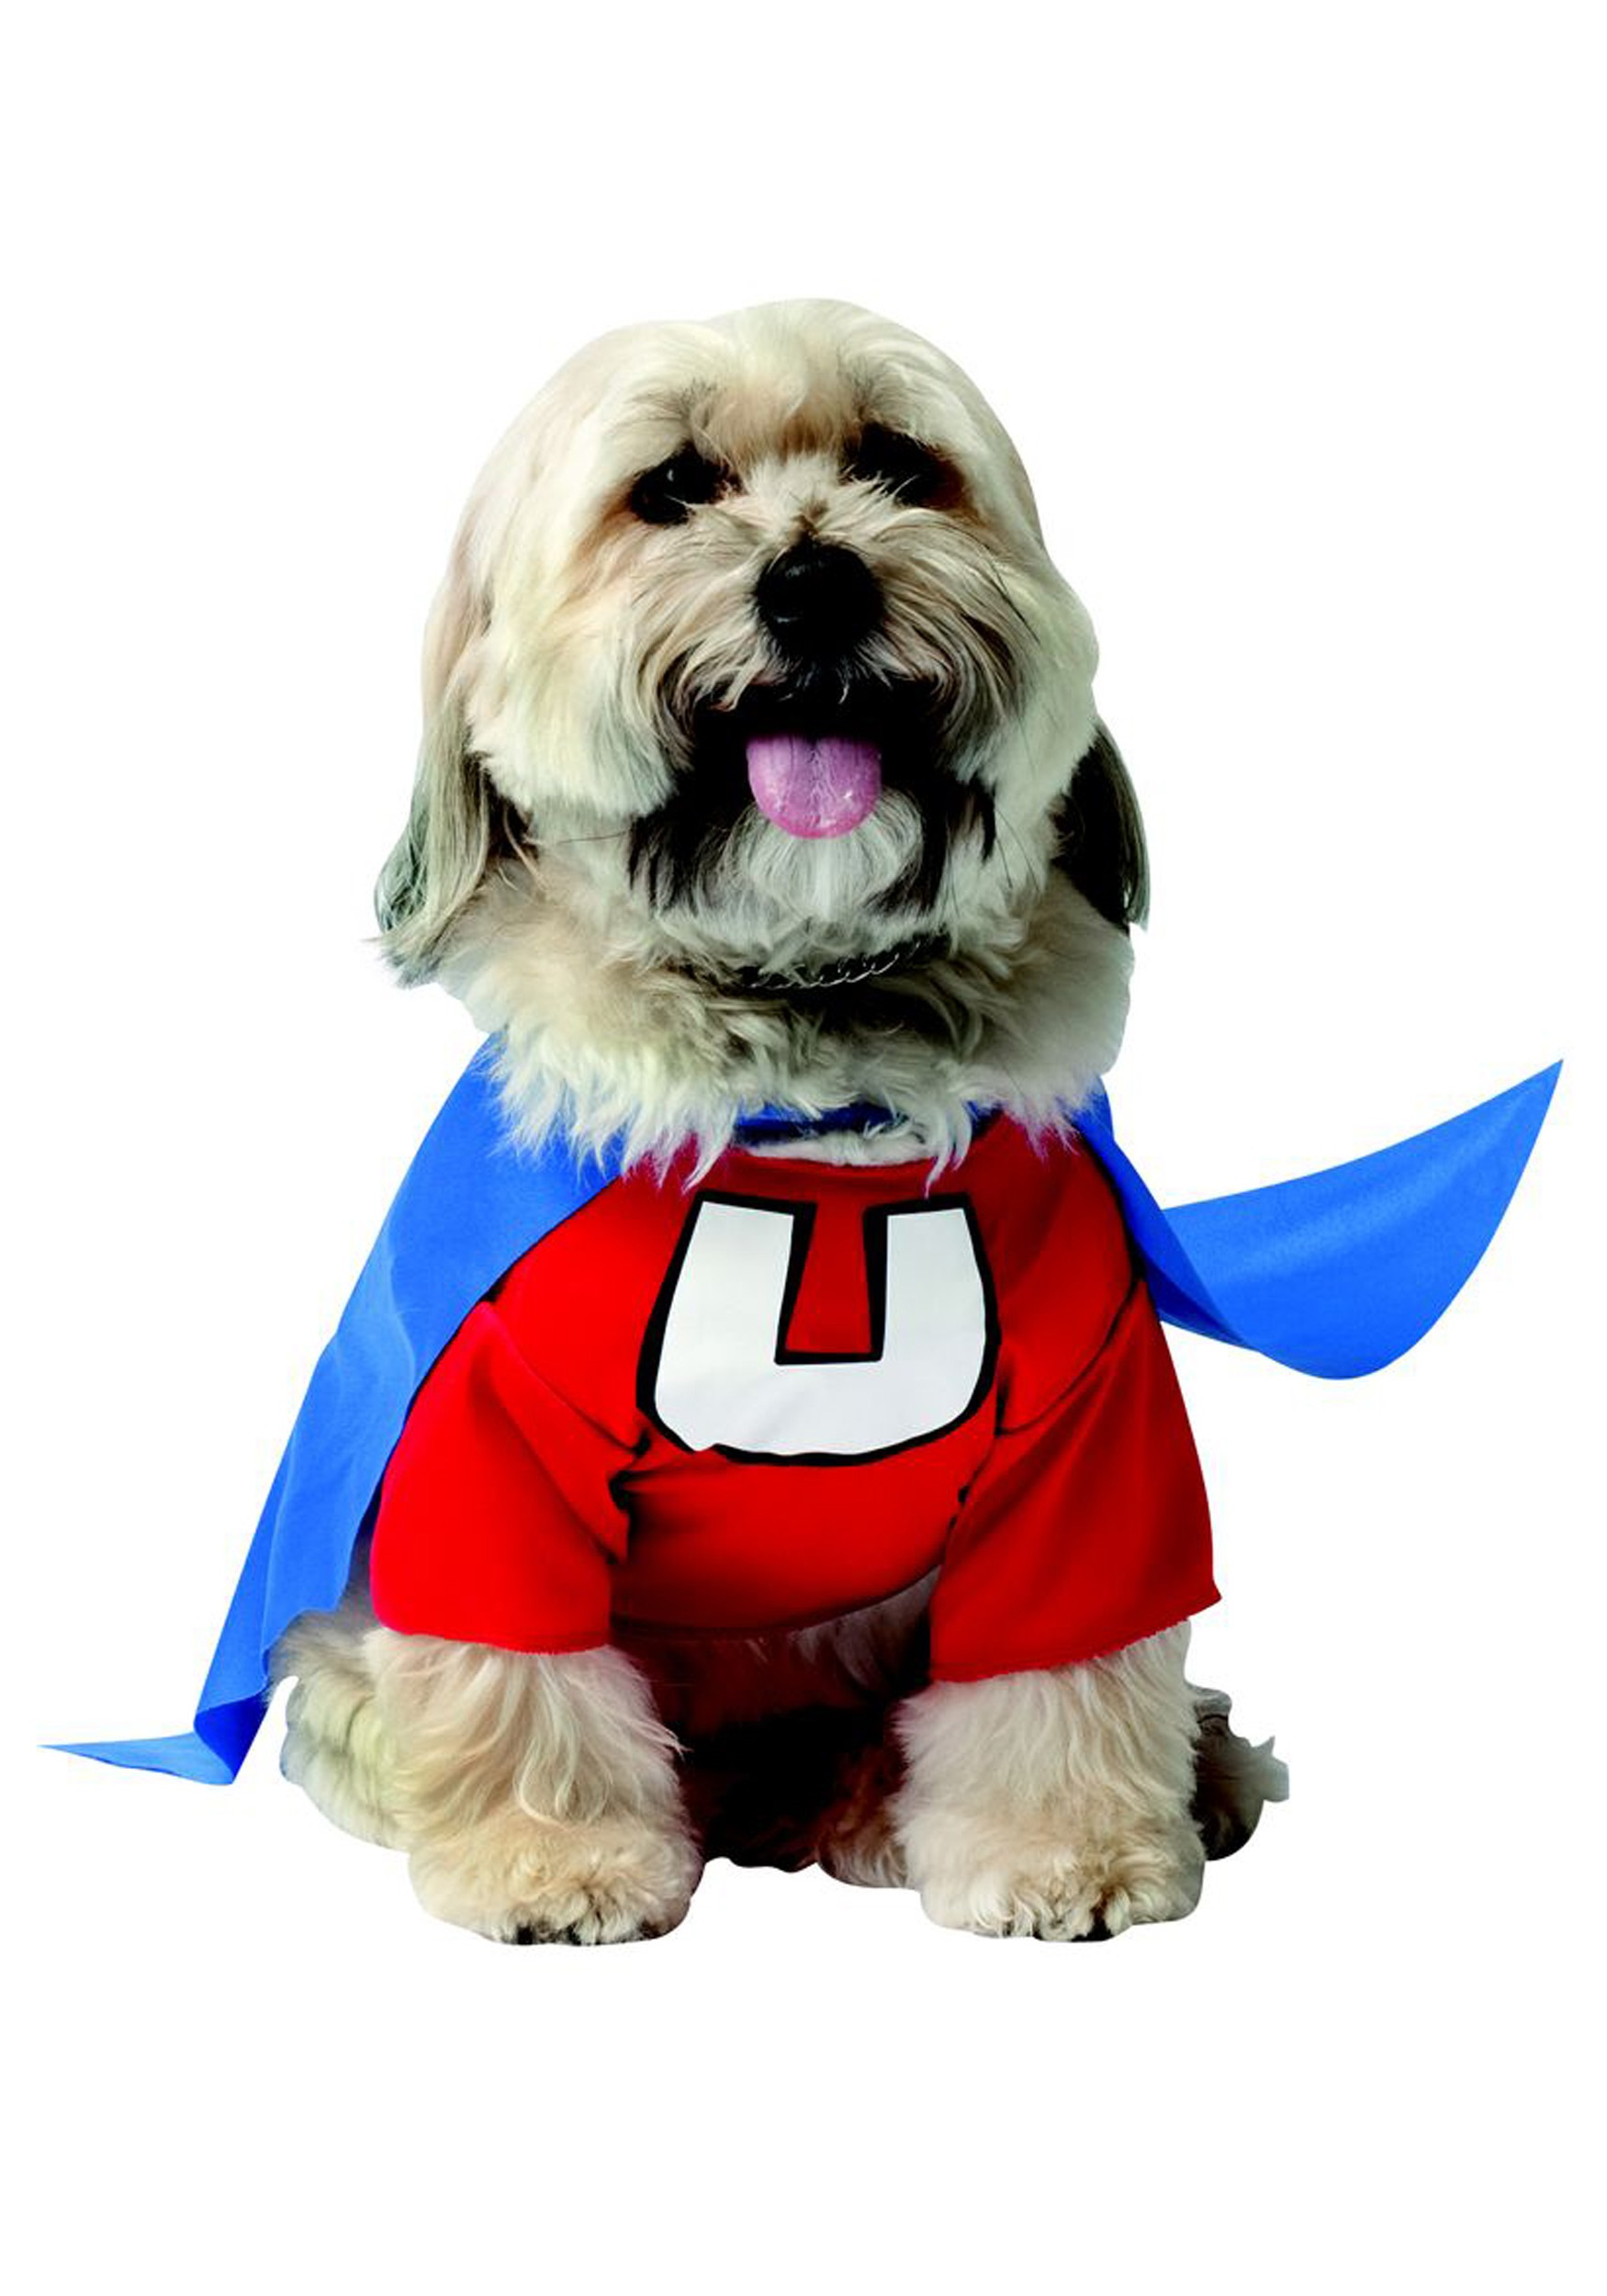 sc 1 st  Halloween Costumes : xl dog halloween costumes  - Germanpascual.Com